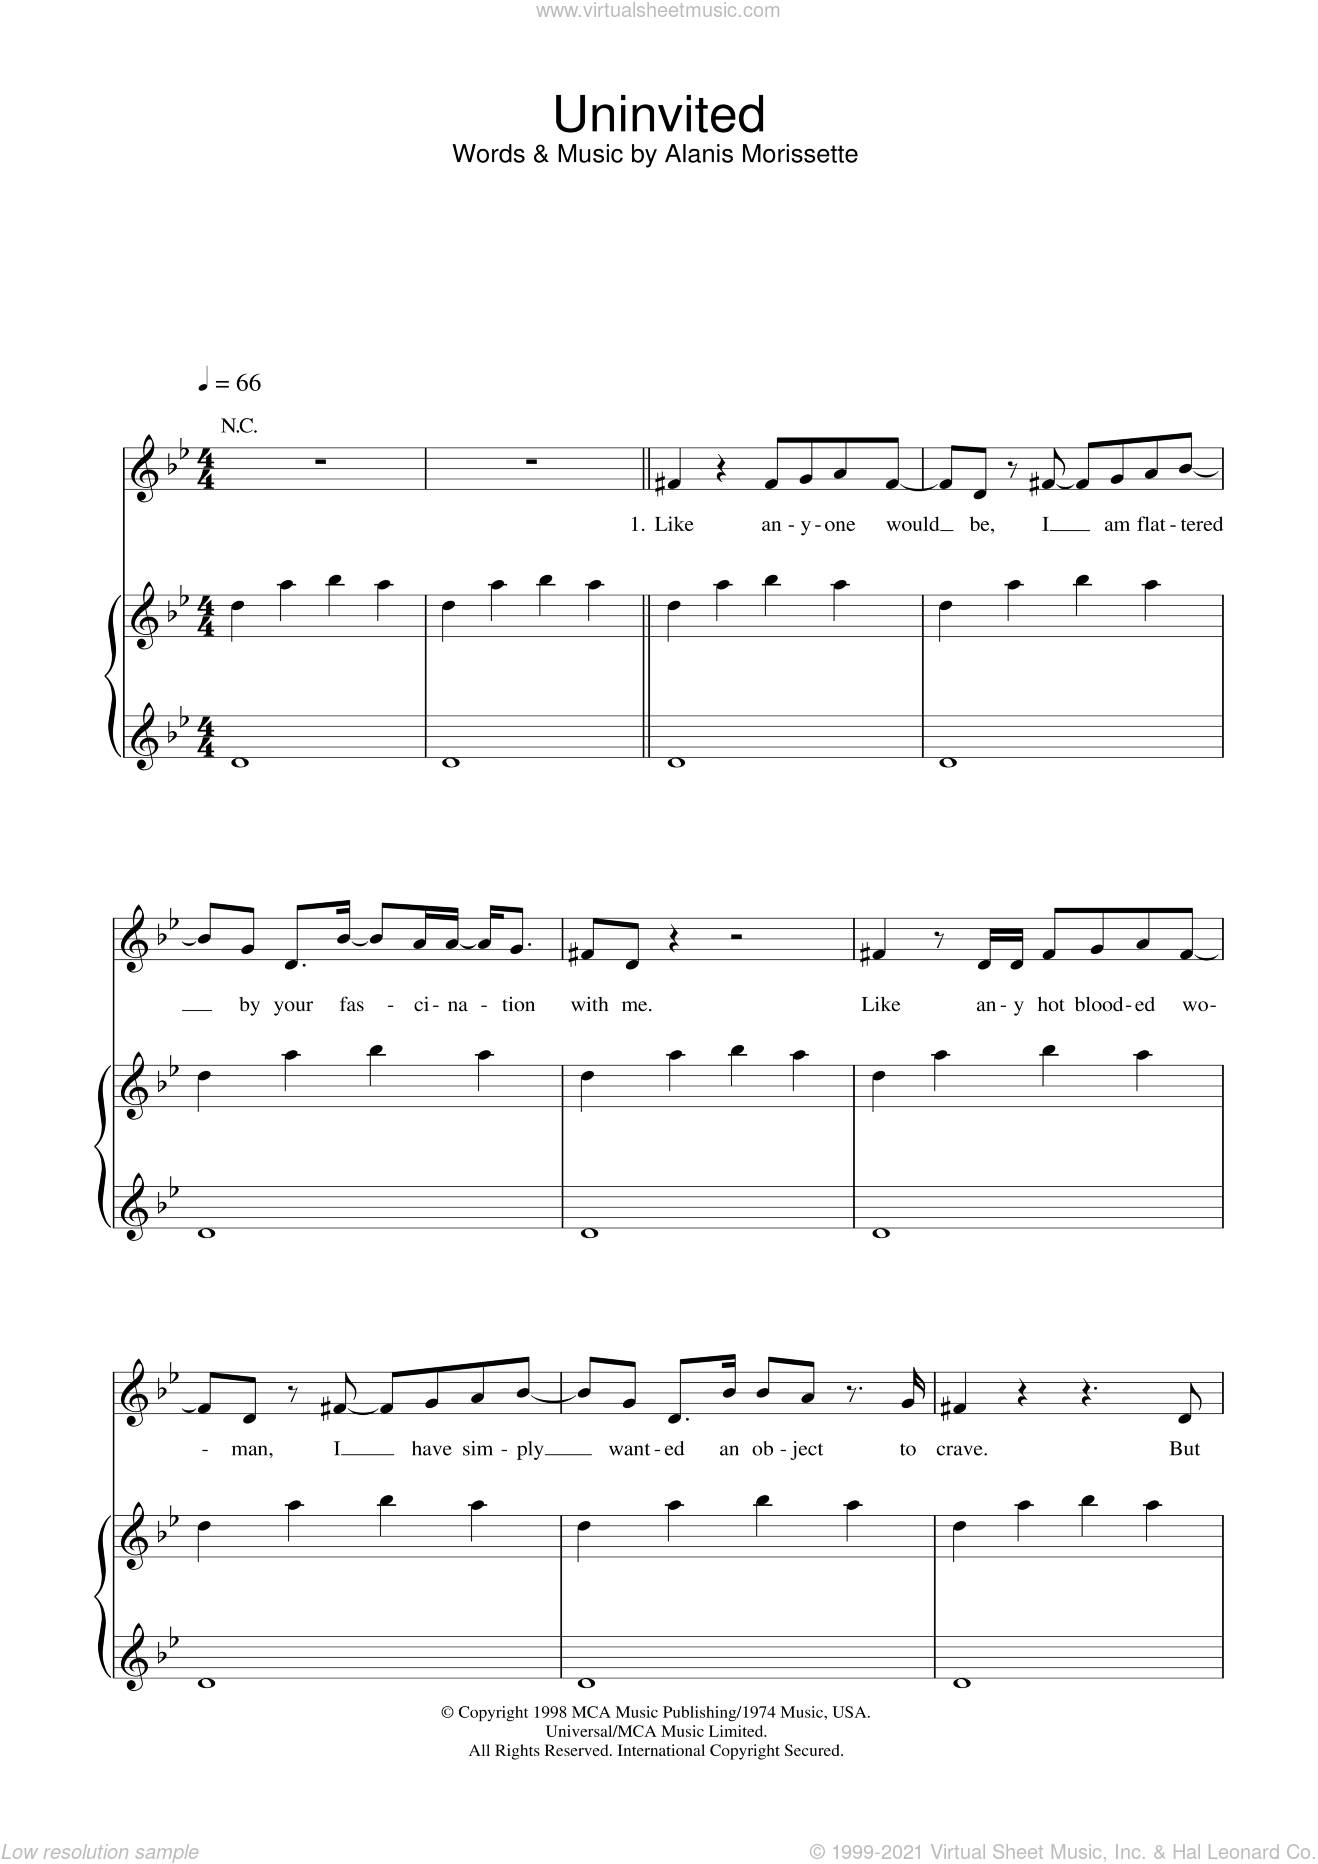 Uninvited sheet music for voice, piano or guitar by Alanis Morissette